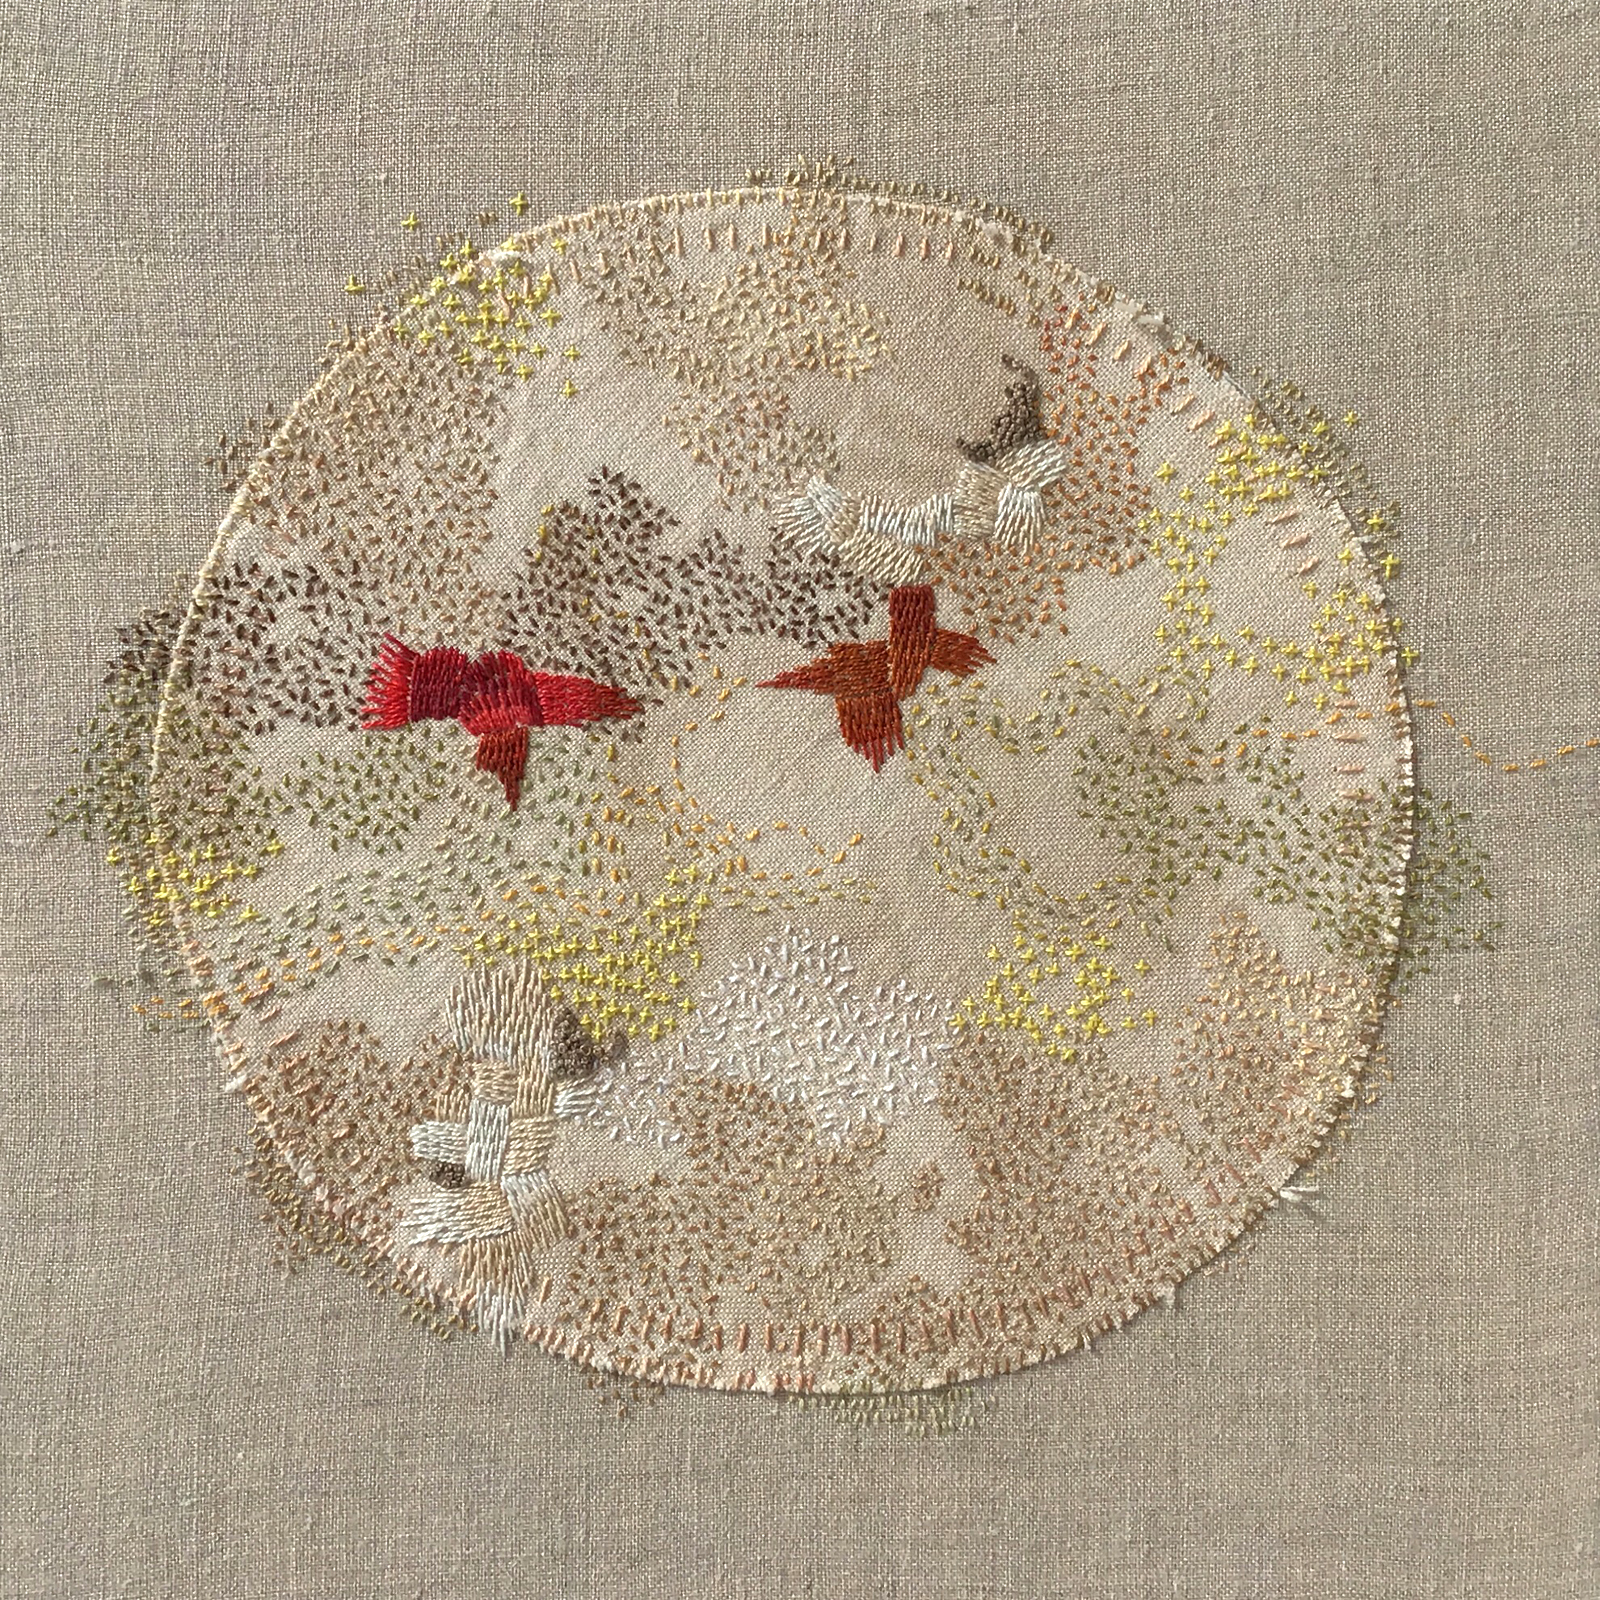 "A Year in Thread: March, 2016, pearl cotton and  linen, 12"" x 12"""